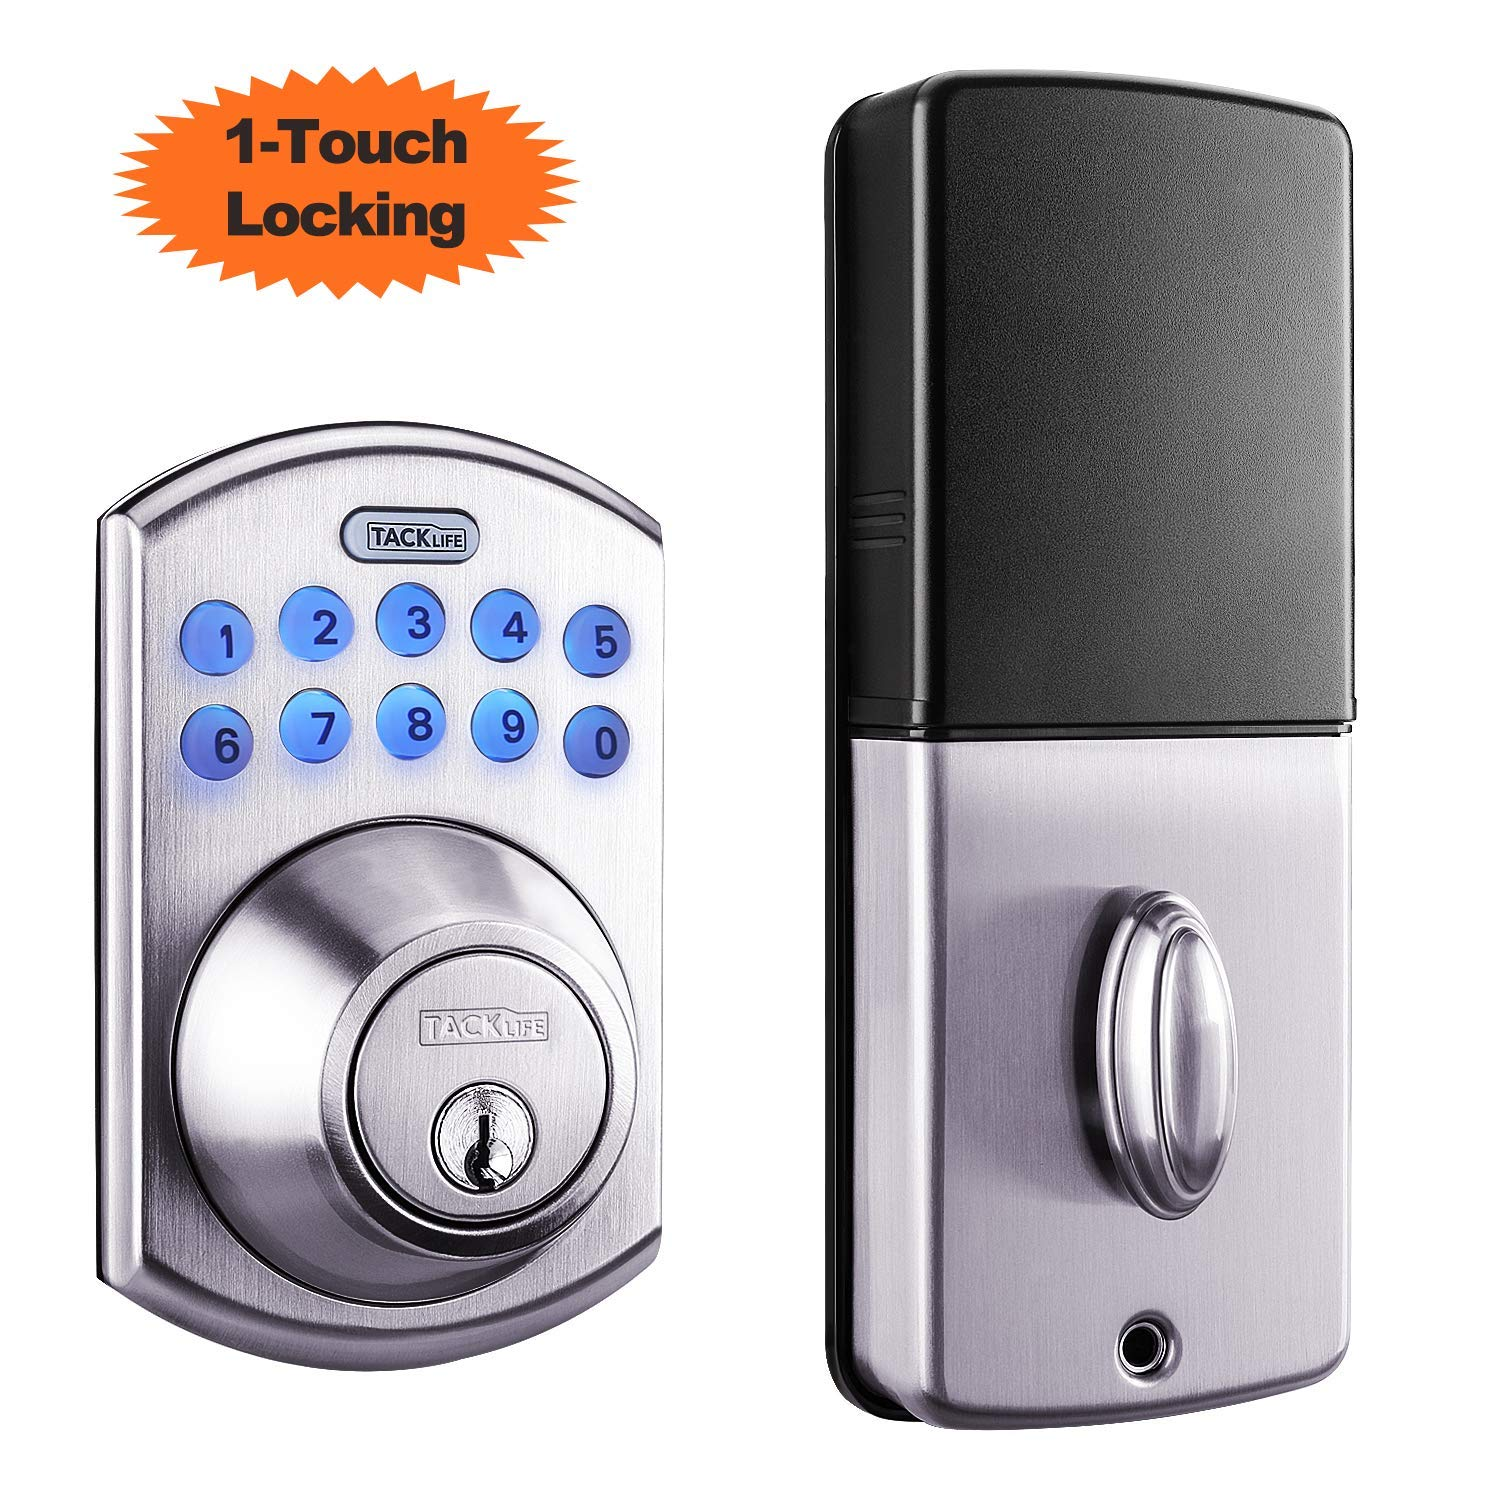 Electronic Deadbolt Door Lock, Keypad Deadbolt Lock with 1-Touch Motorized Locking, Single Cylinder & Back-lit Keypad Lock | Easy to Install for Locker, Office & Home, Satin Nickel-EKPL1A